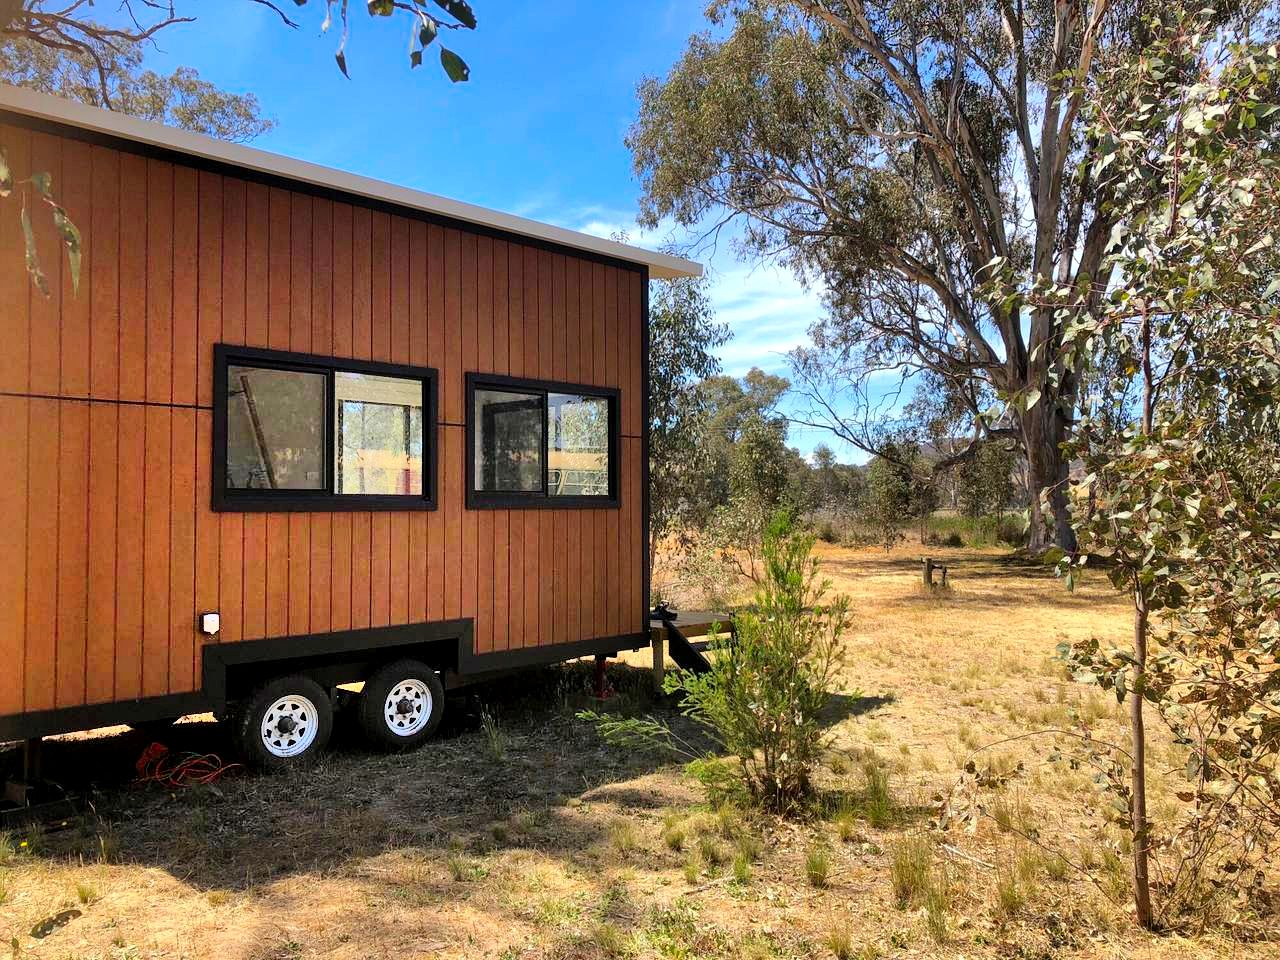 This charming tiny house rental in Jindera is the perfect choice for guests looking for unforgettable romantic getaways in NSW.